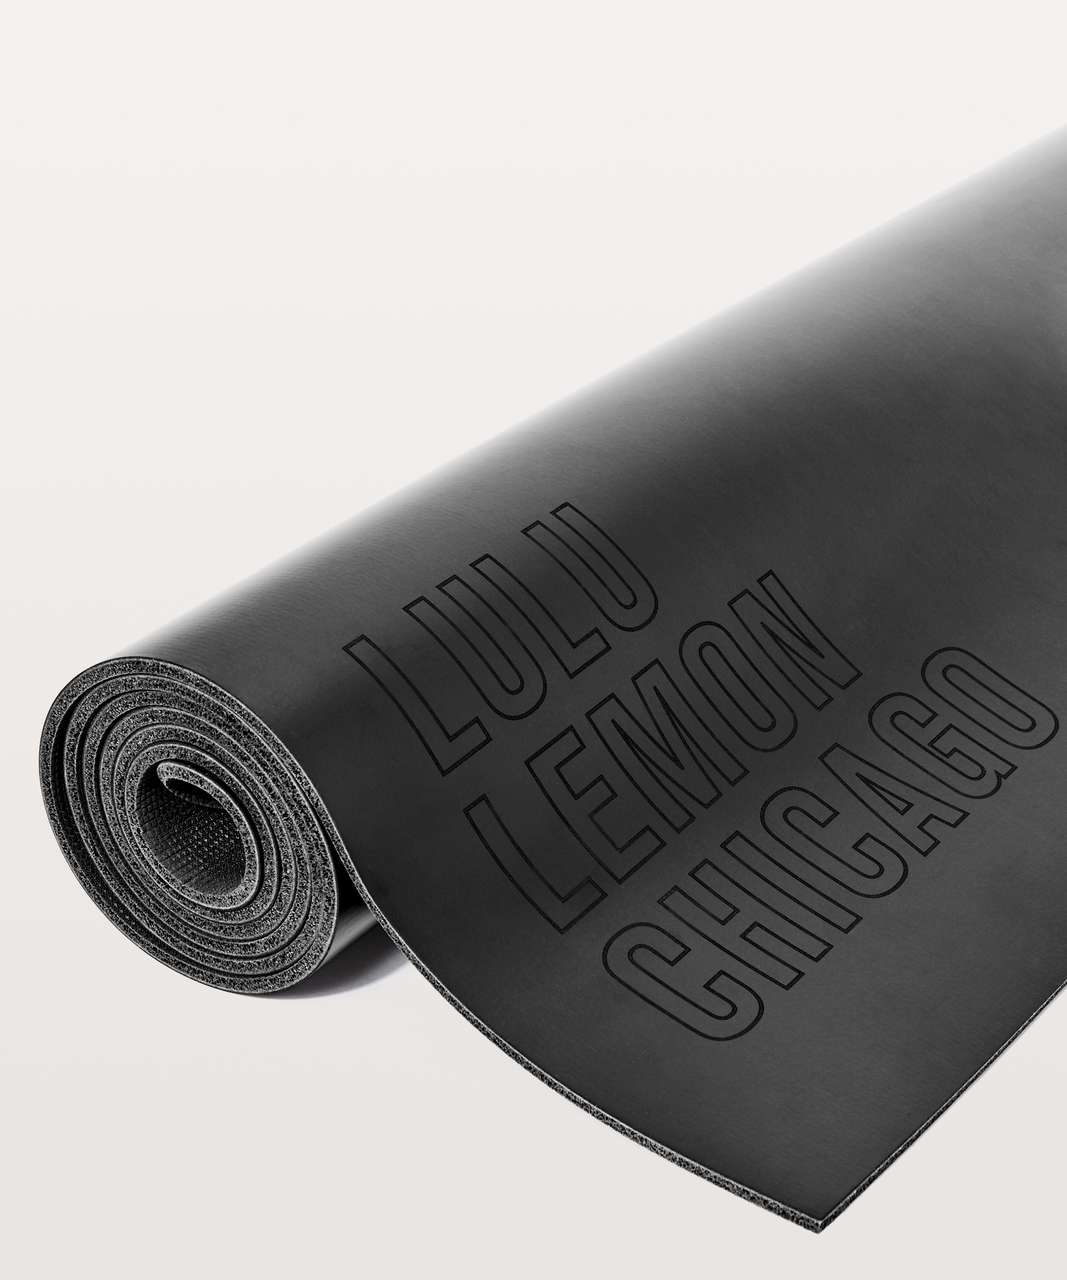 Lululemon The Reversible Mat 5mm Chicago - My City Mat Chicago